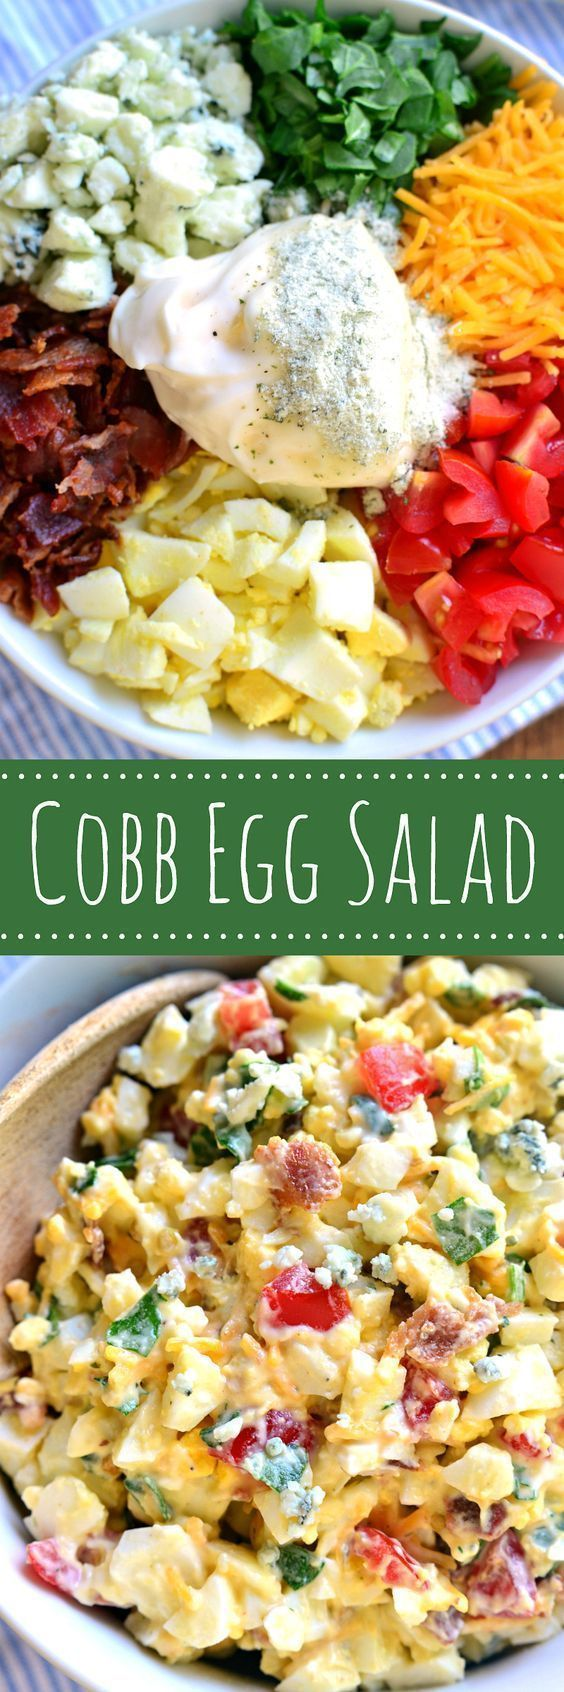 Cobb Egg Salad is loaded with all the flavors of cobb salad and is delicious in a sandwich or all on its own! Perfect for lunch with friends or a picnic at the park, this recipe takes egg salad to a w (Favorite Salad Lunches)